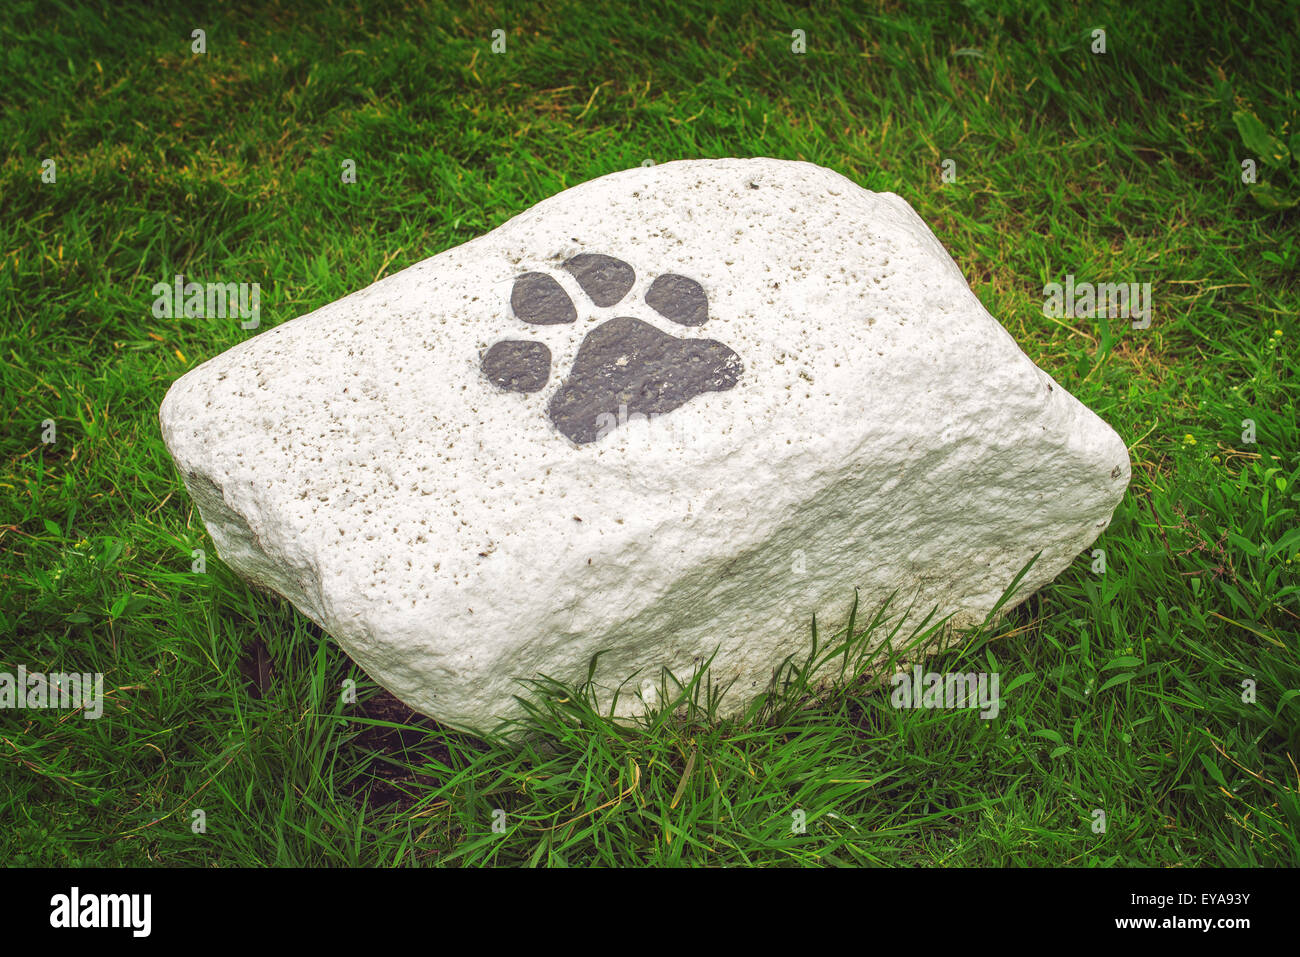 White Stone with Dog Paw Symbol as Pet Space Boundary Marking in Park - Stock Image